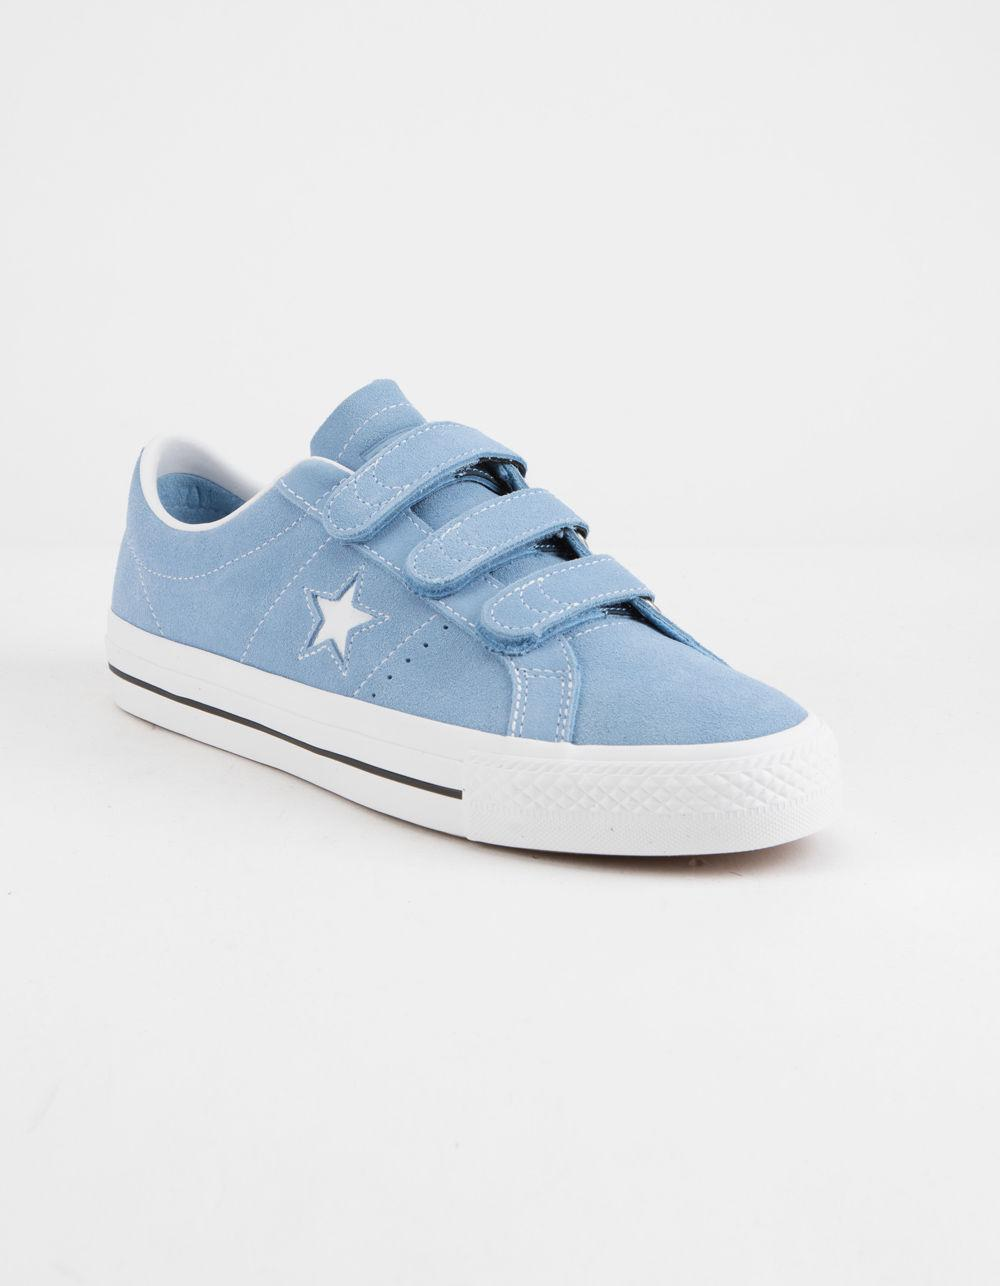 Lyst - Converse One Star Pro 3v Ox Light Blue   White Shoes in Blue for Men 845f66465